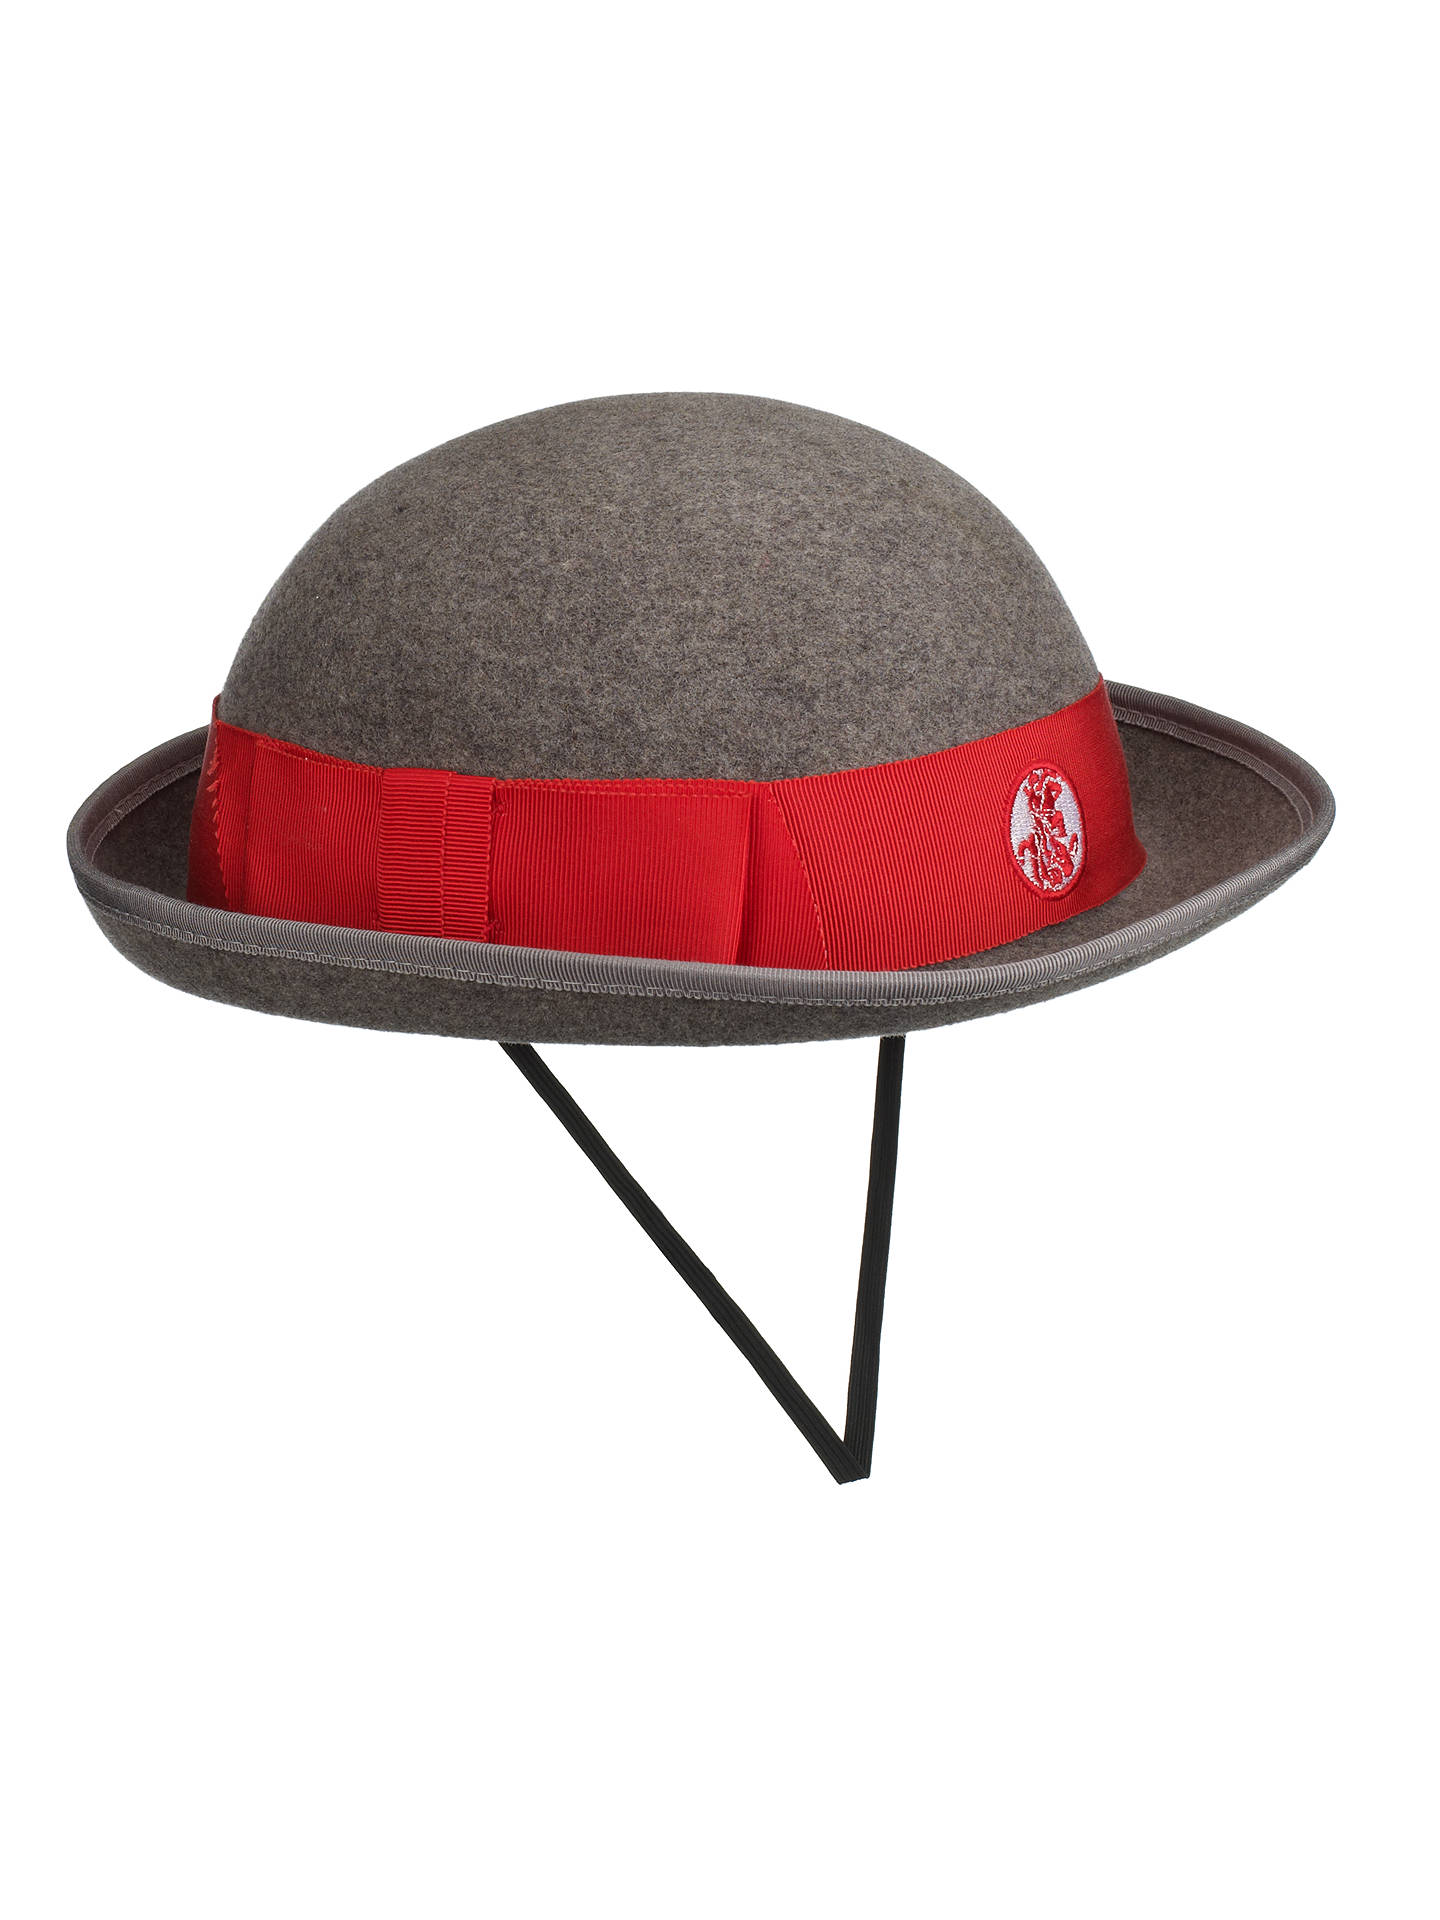 b0a0d6d6e5390 Buy St George's School, Hanover Square Girls' School Hat, Grey, XS Online